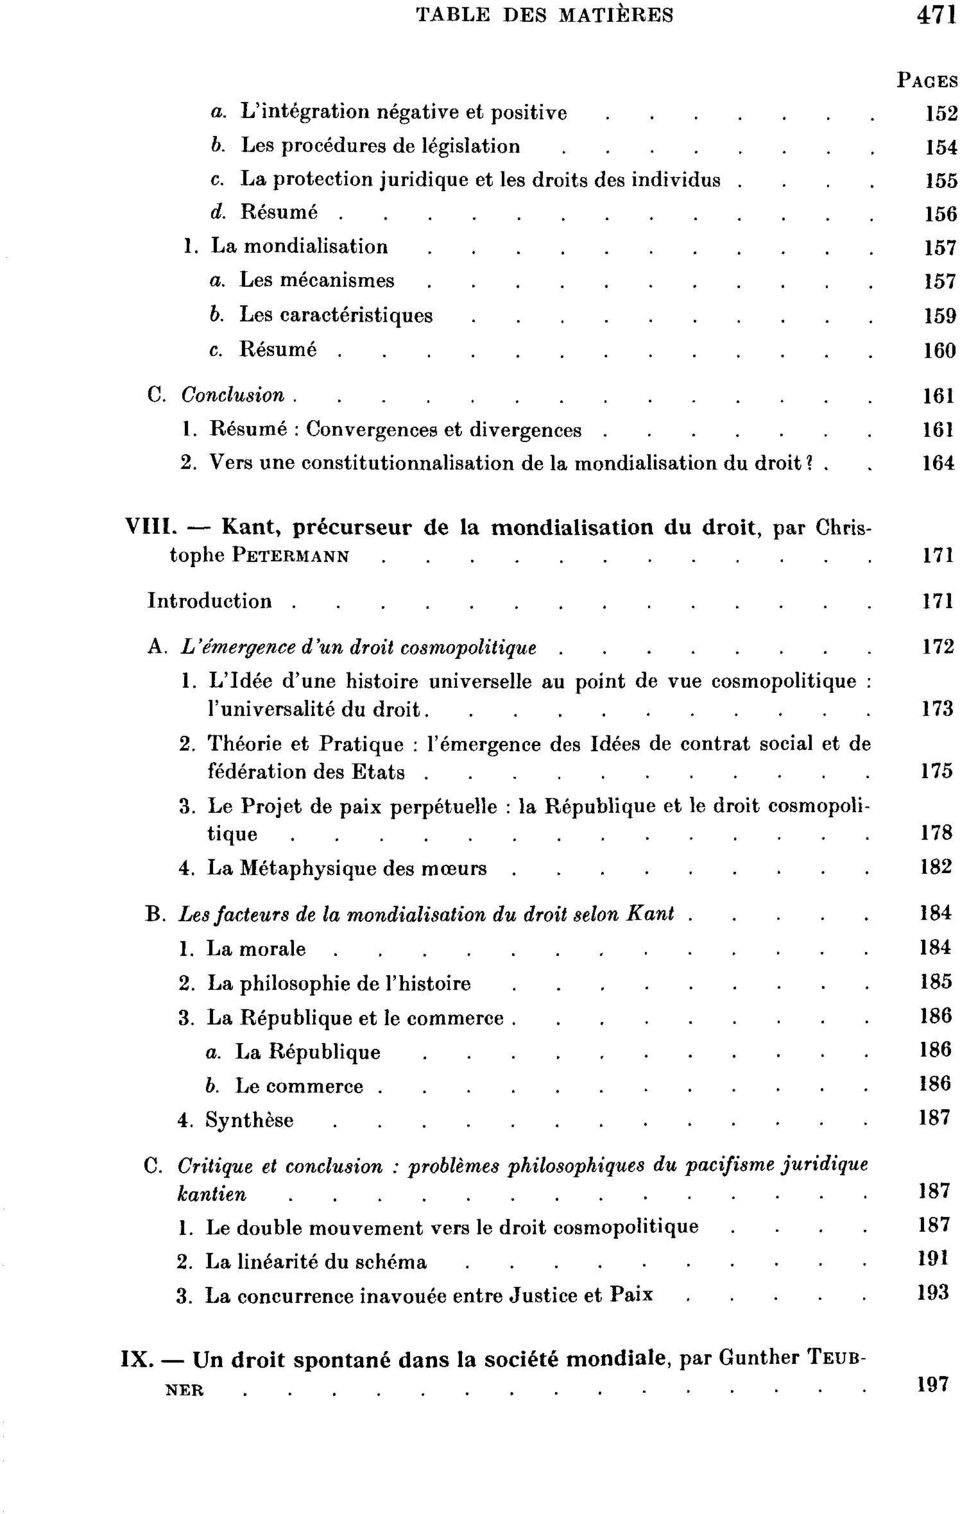 Vers une constitutionnalisation de la mondialisation du droit?.. 164 VIII. Kant, precurseur de la mondialisation du droit, par Christophe PETERMANN 171 Introduction 171 A.